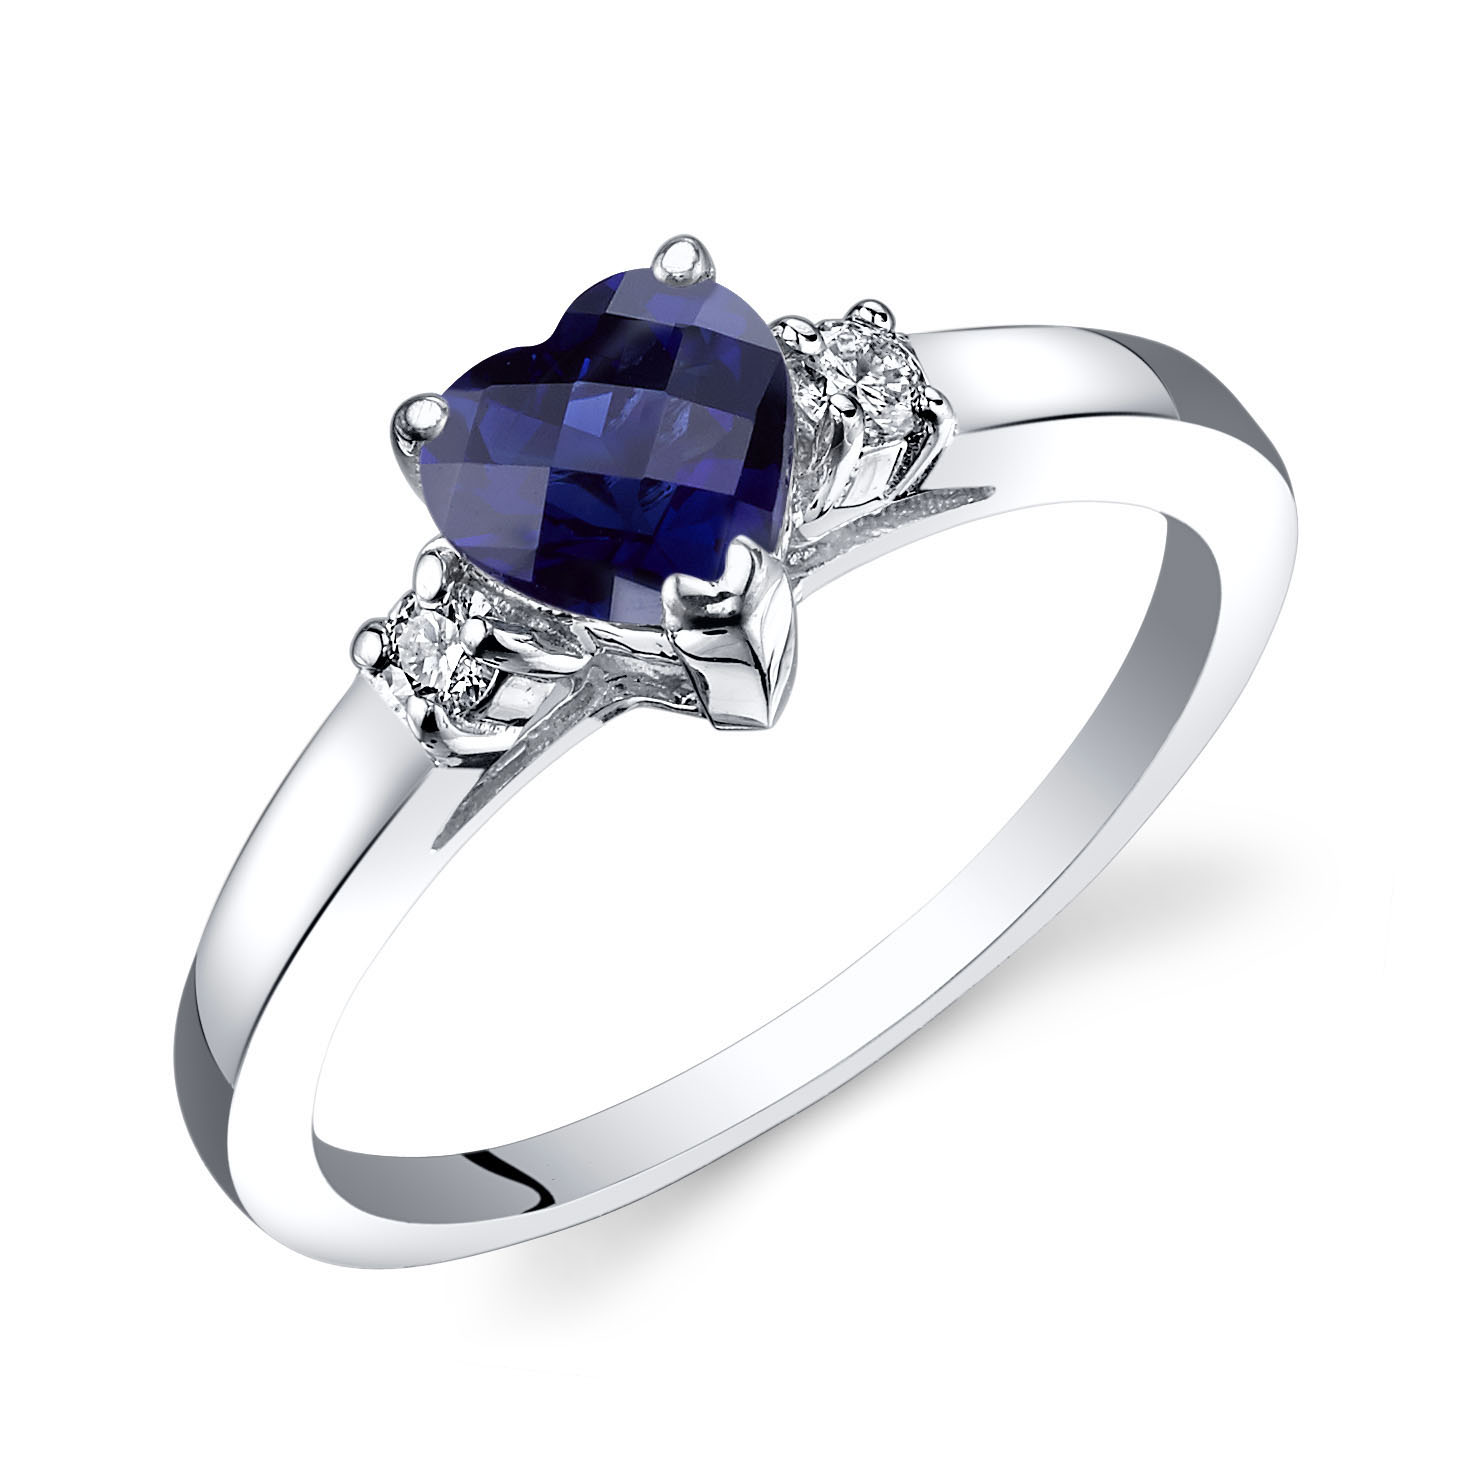 Heart Shaped Sapphire & Diamond Ring in 9ct White Gold